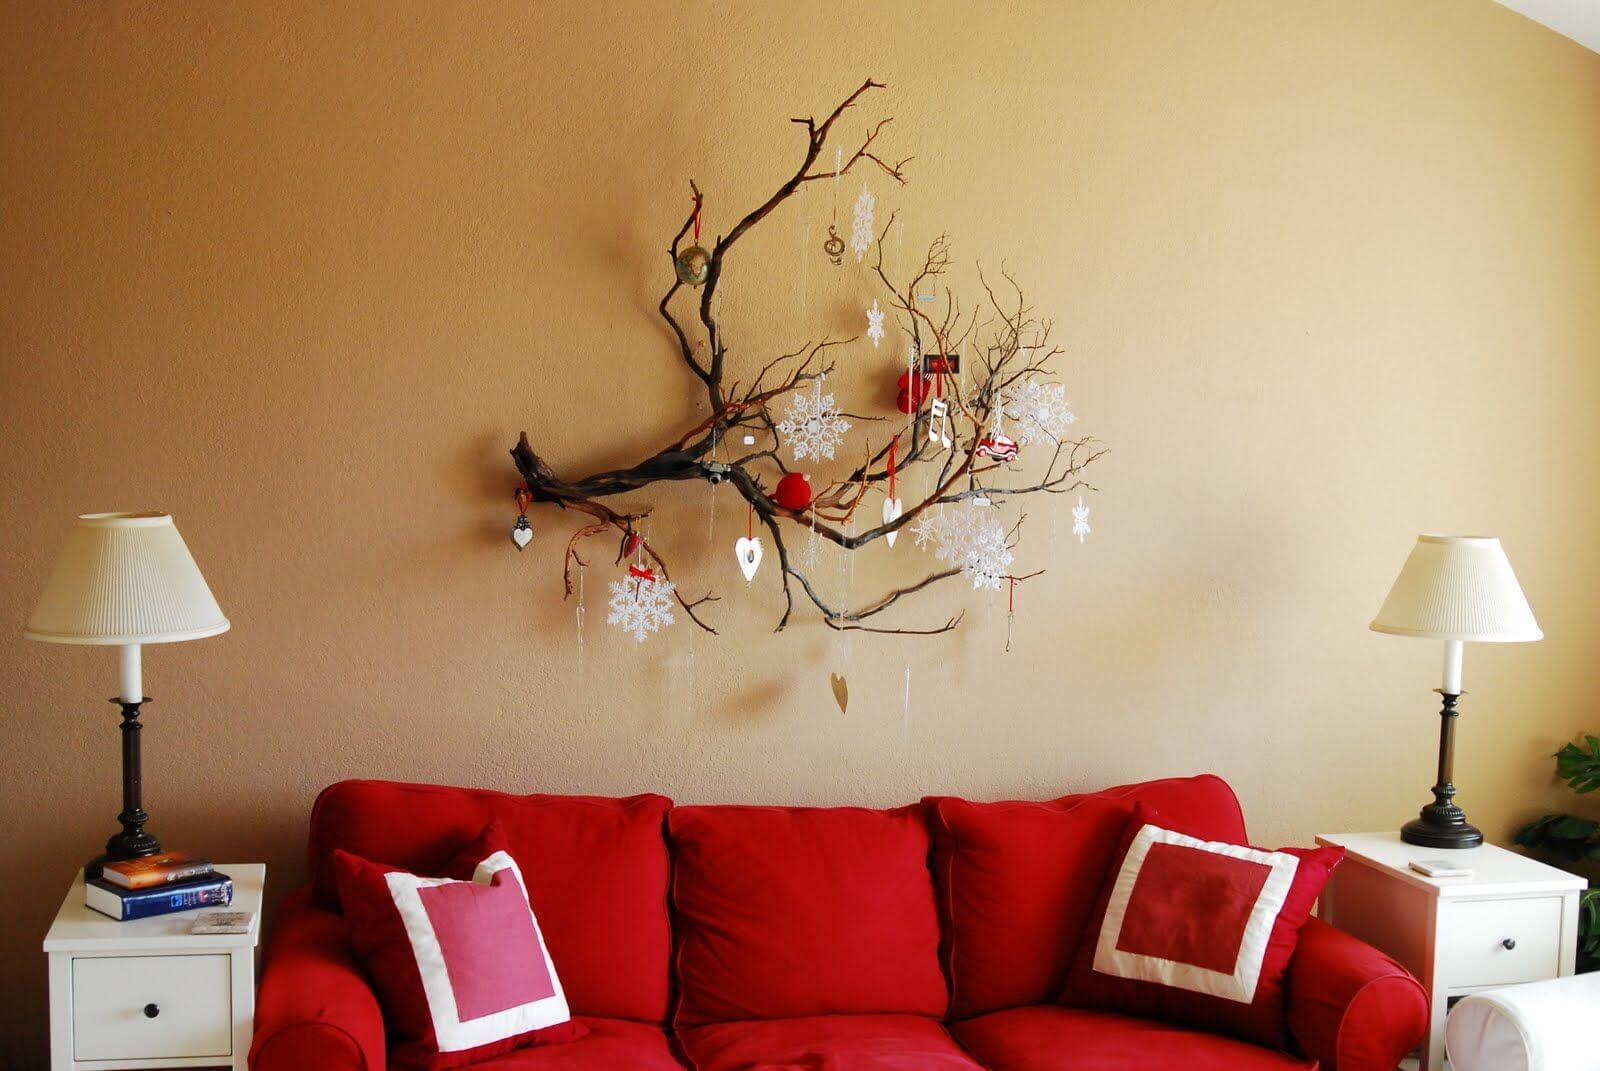 Amazing Wall Decoration Ideas Part - 9: Old Tree Branch Decorative Wall Hanging